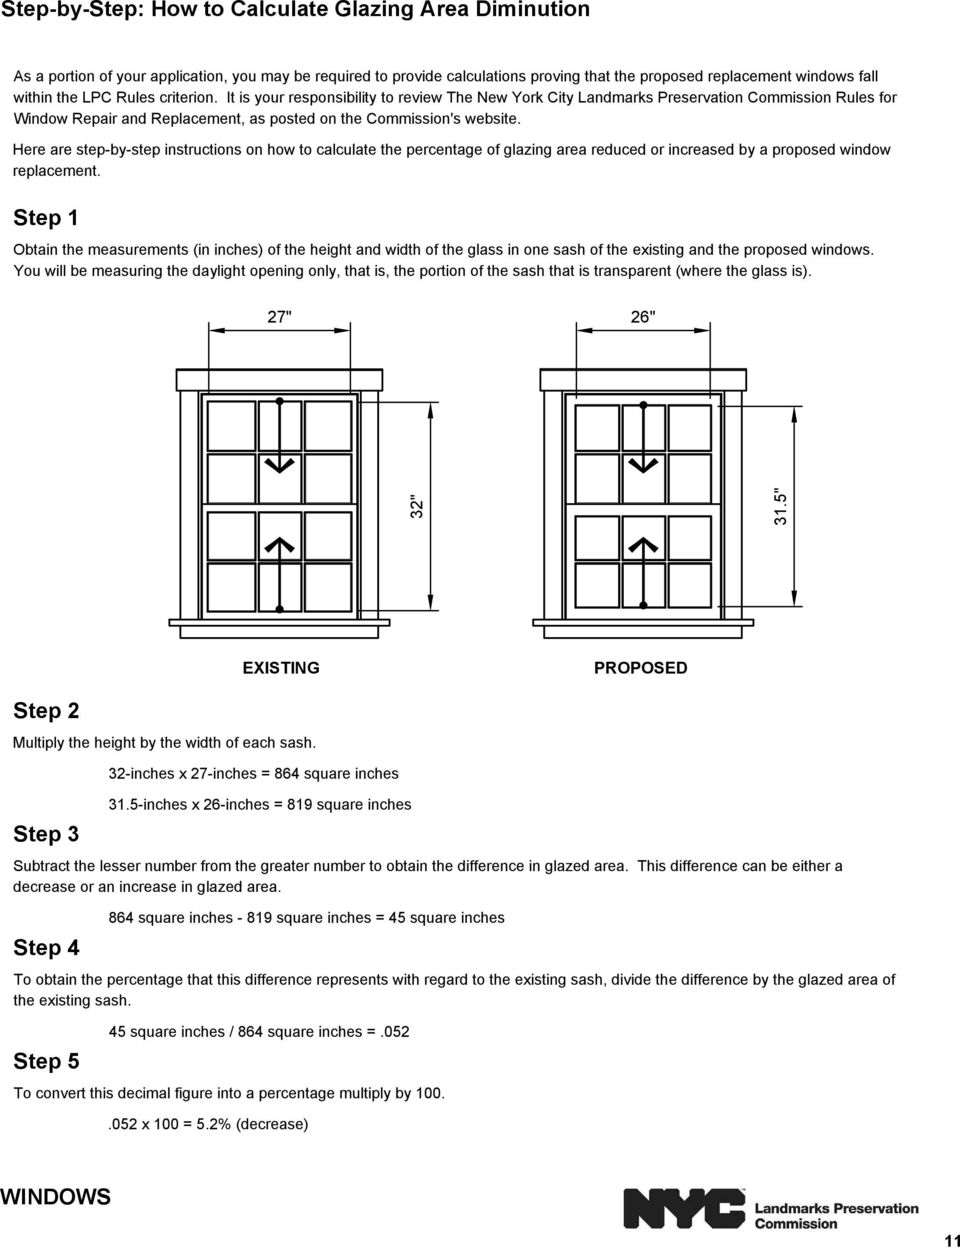 Here are step-by-step instructions on how to calculate the percentage of glazing area reduced or increased by a proposed window replacement.